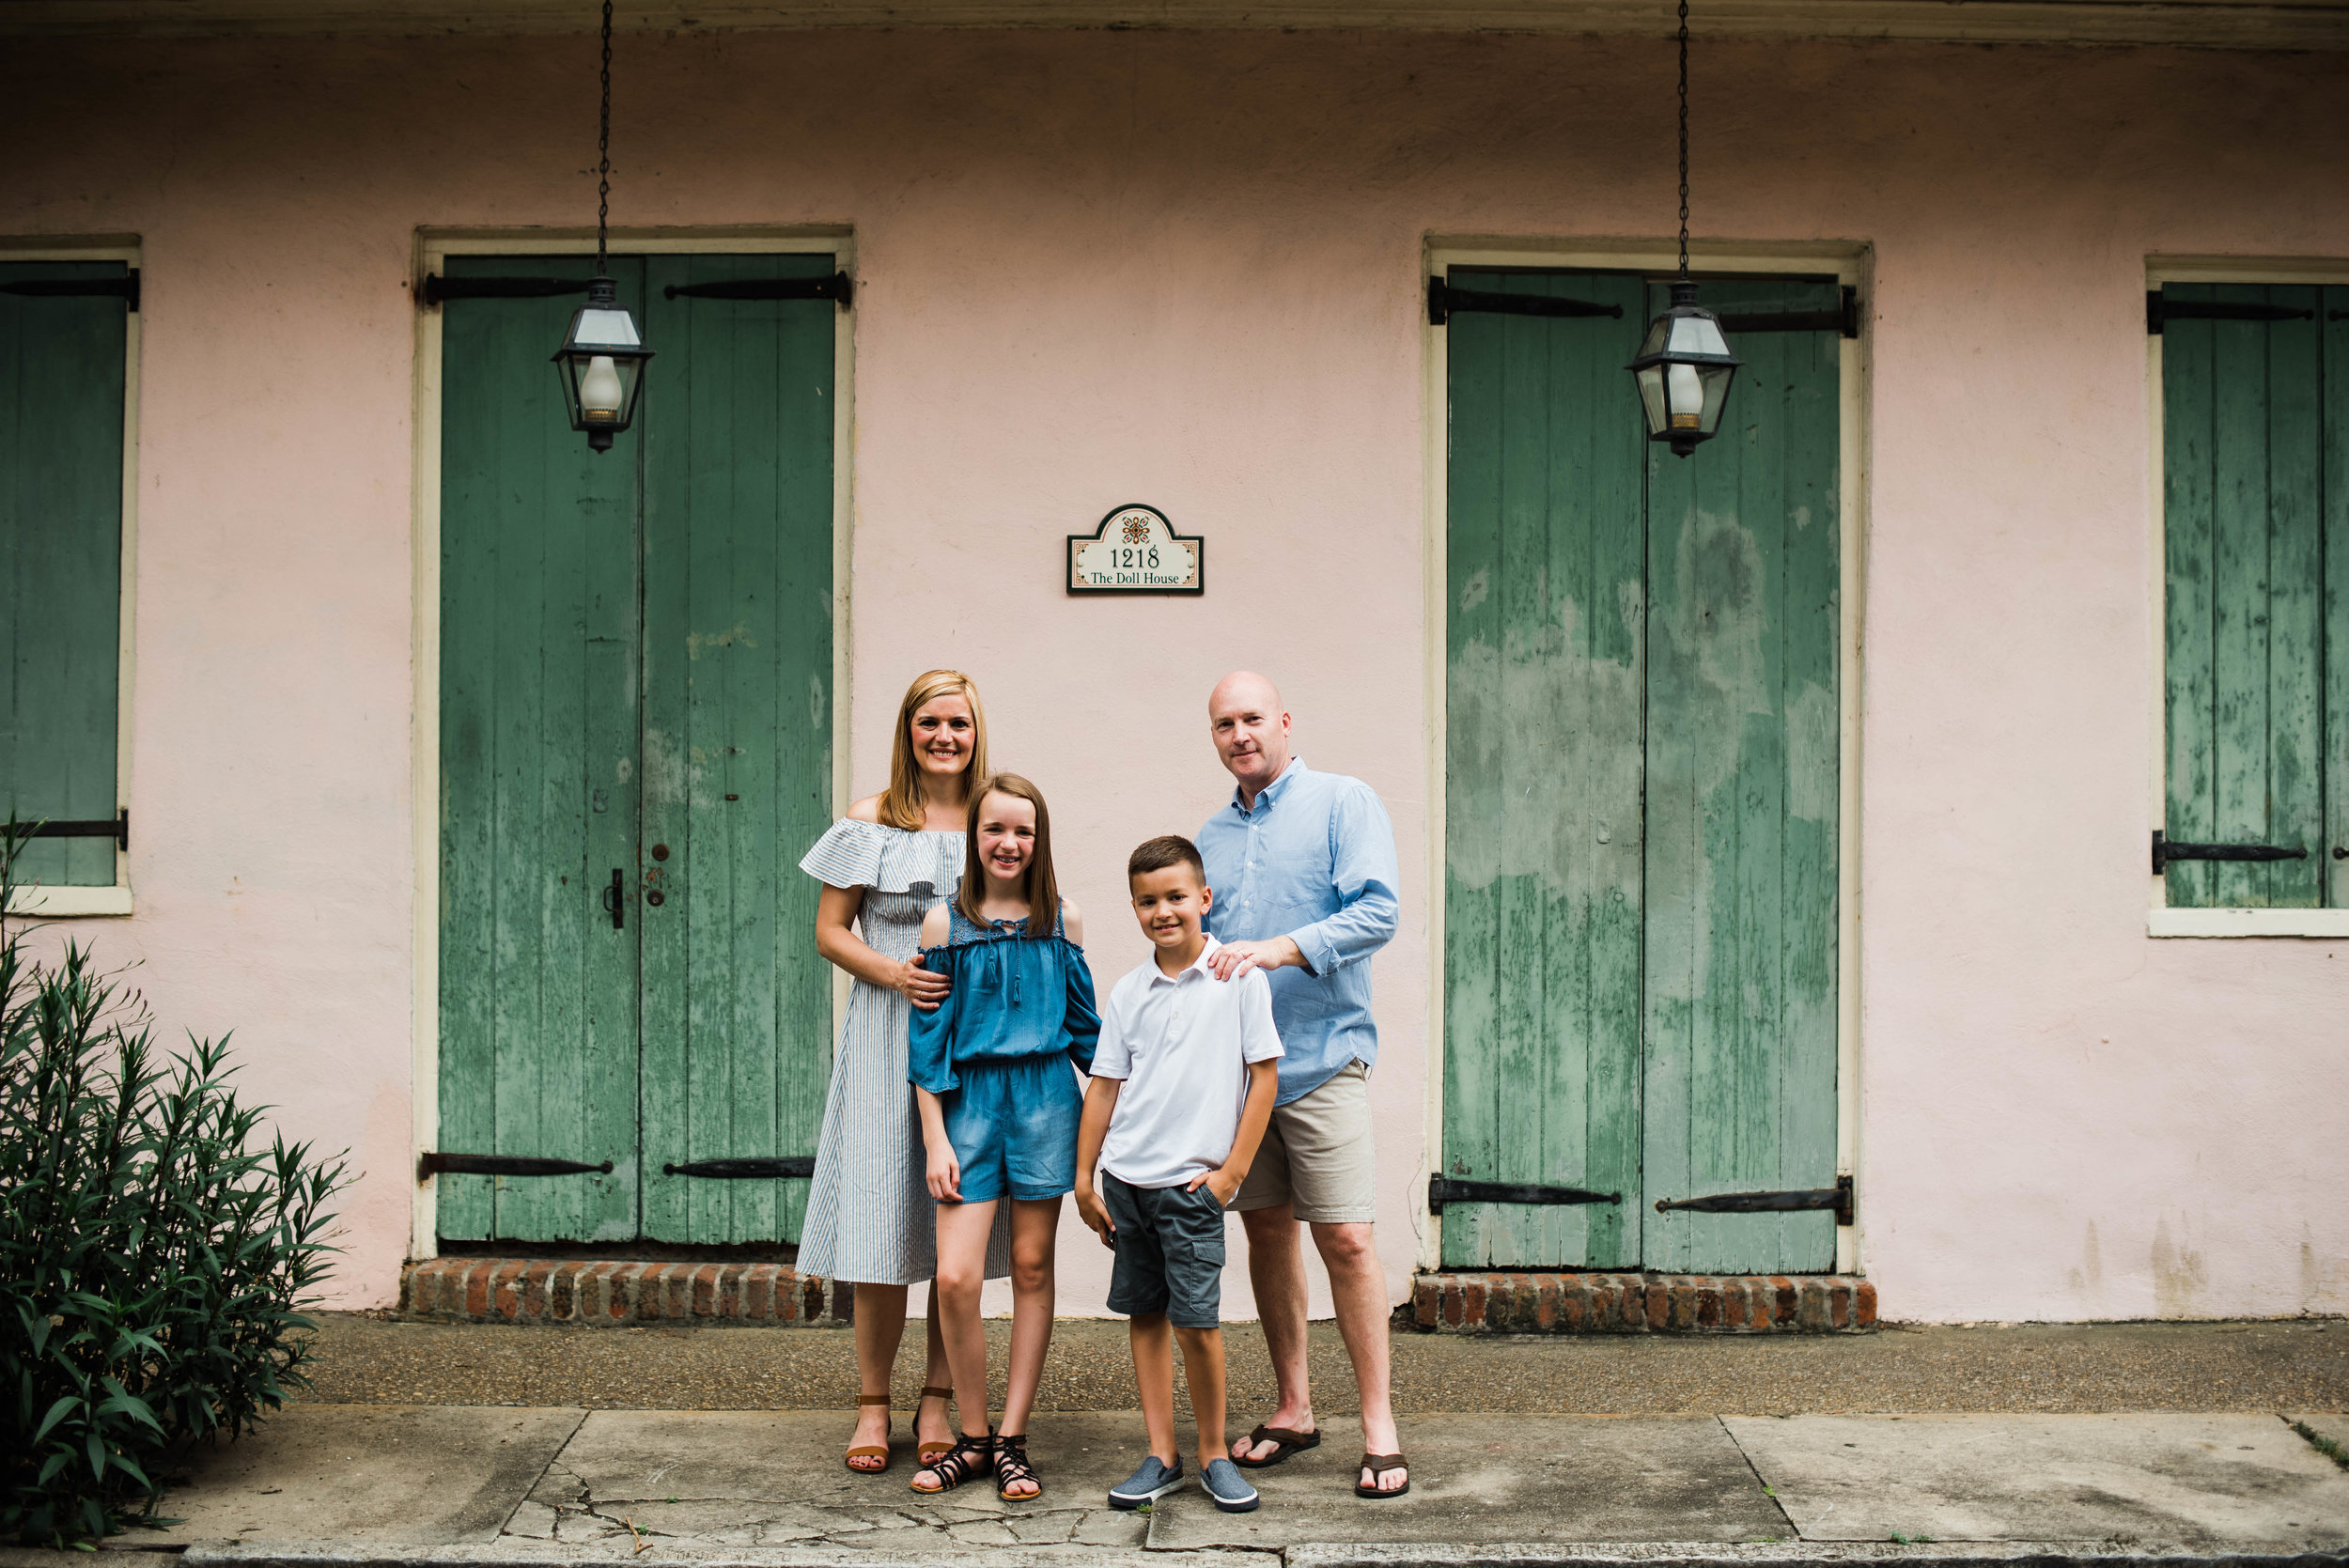 Conrad-Family-Photos-New-Orleans-French-Quarter_Gabby Chapin Photography_0135.jpg